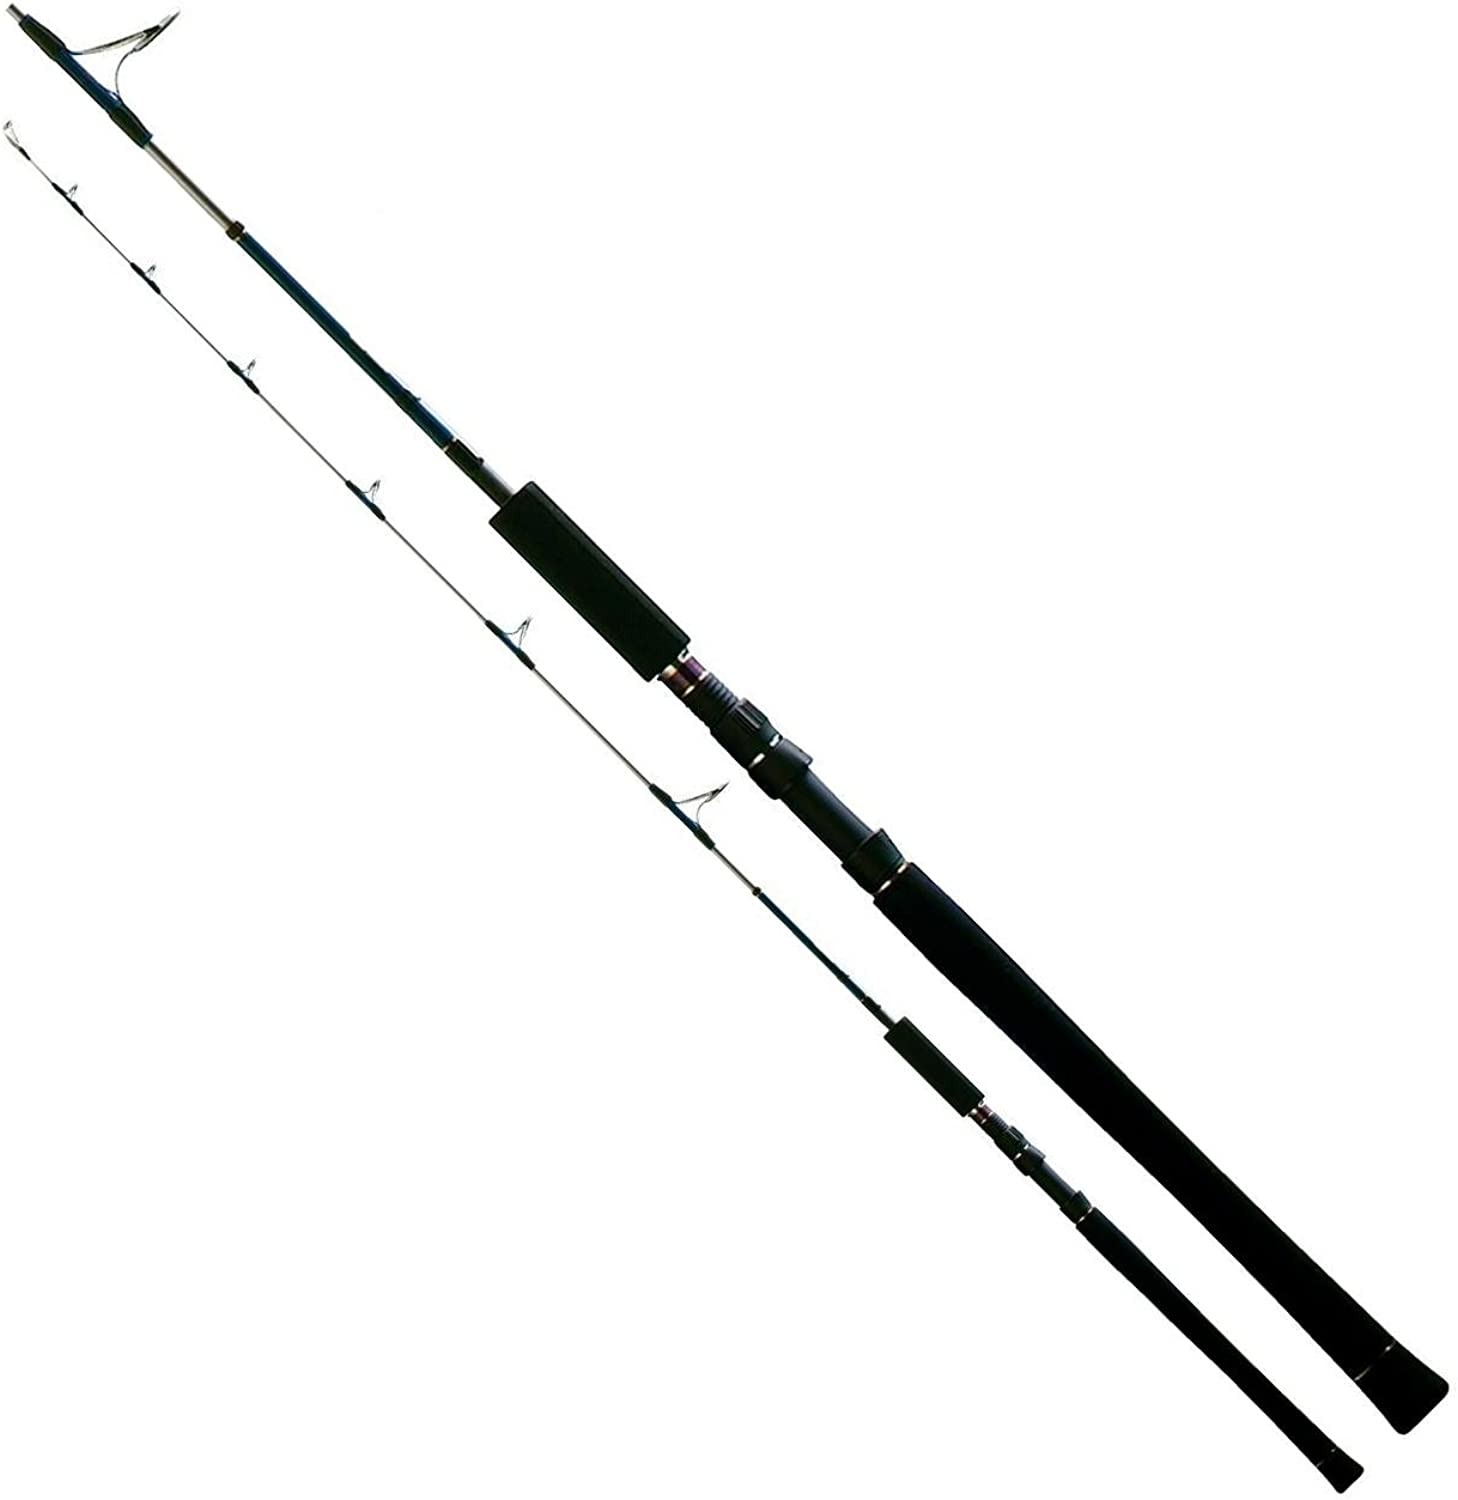 Uzaki Nissin rod ARES REAL OFF SHORE ROFB508